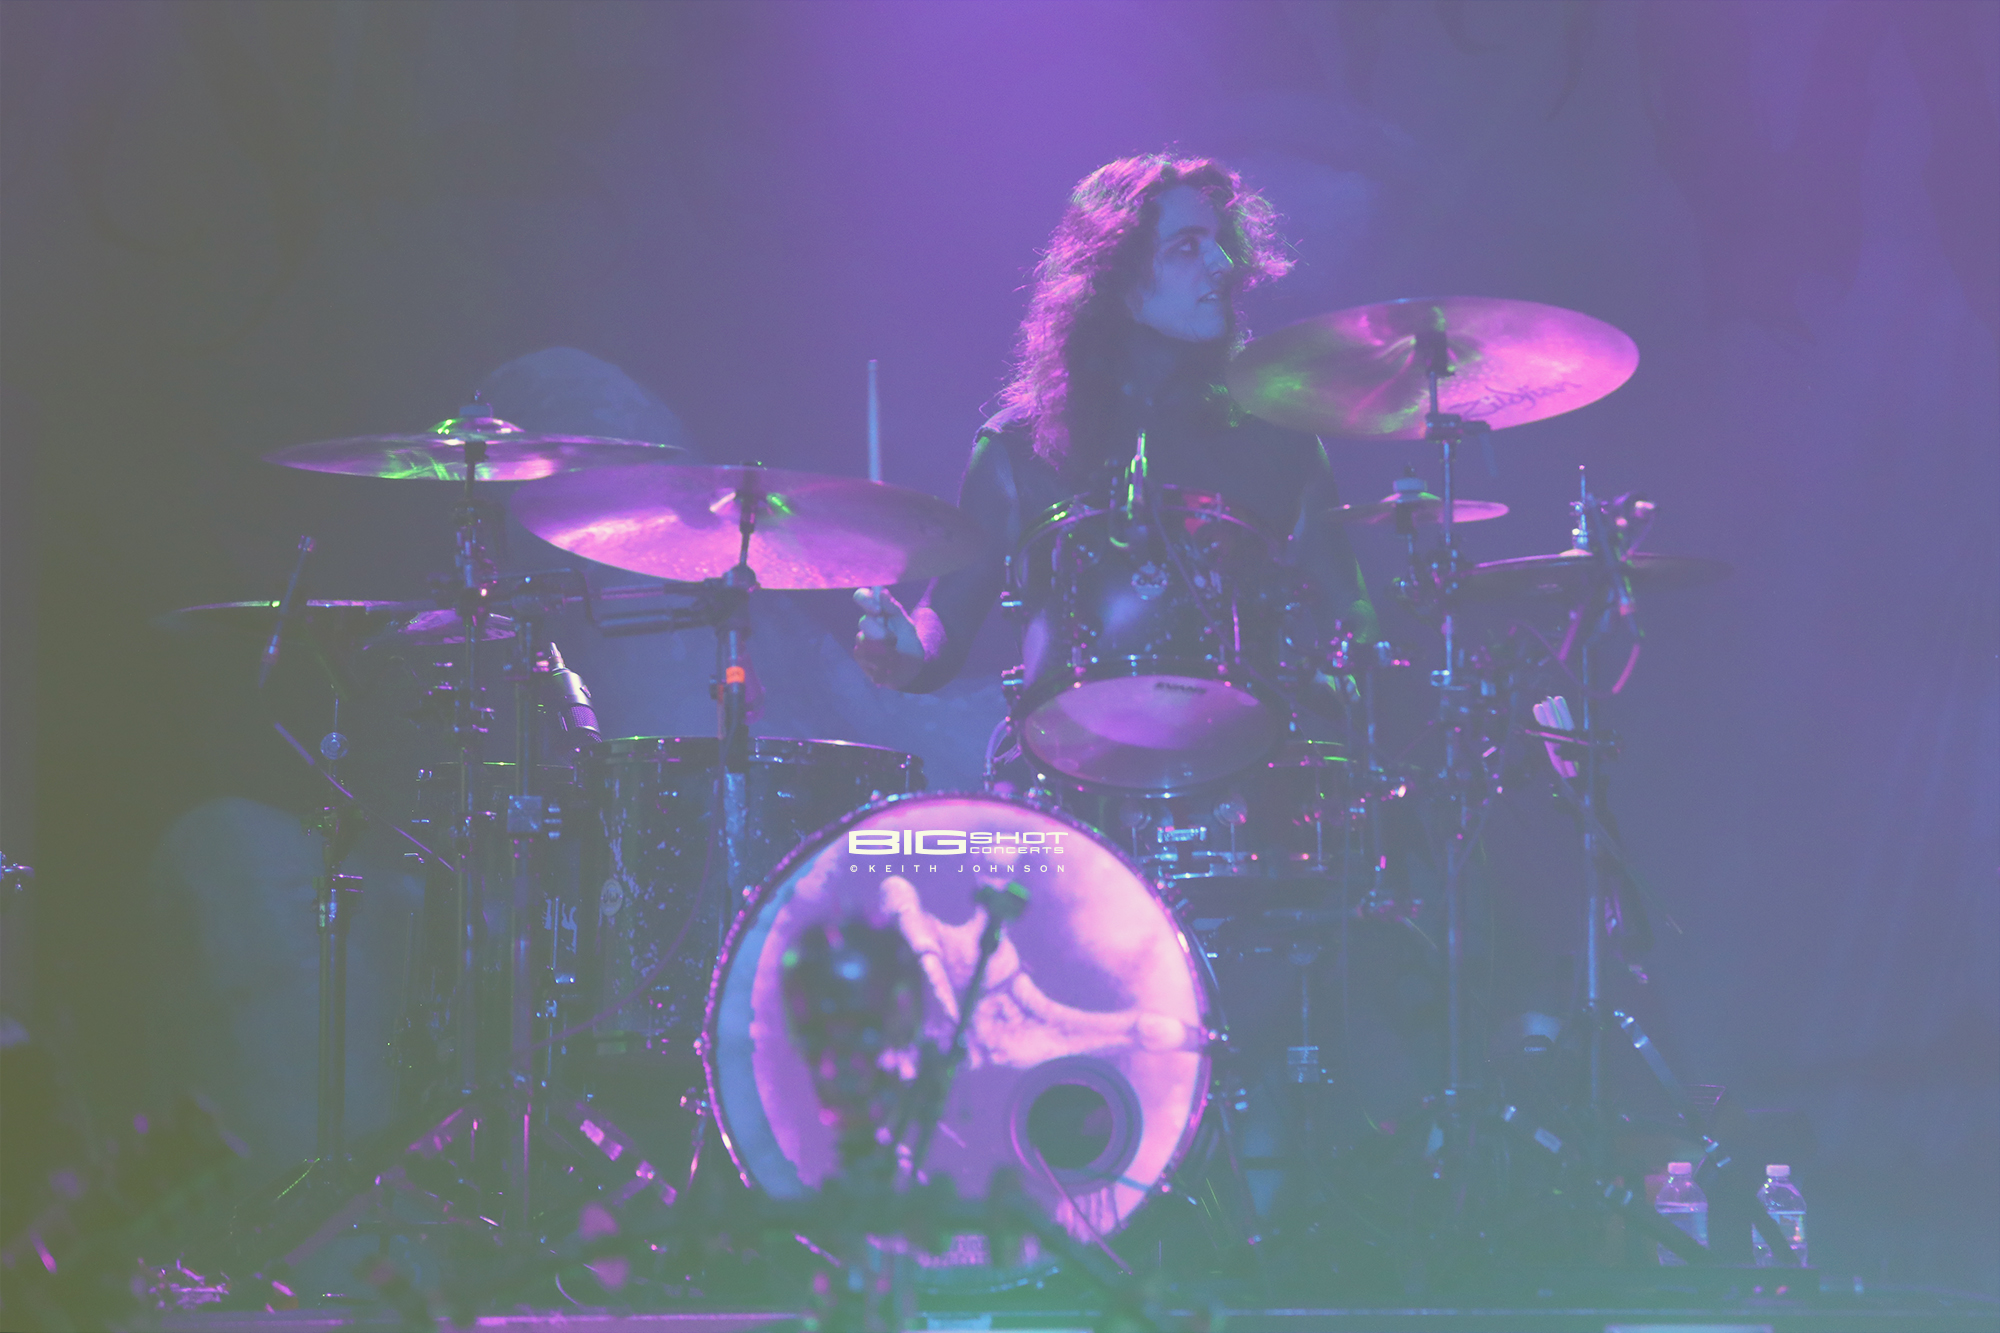 Drummer Vinny Mauro of Motionless in White